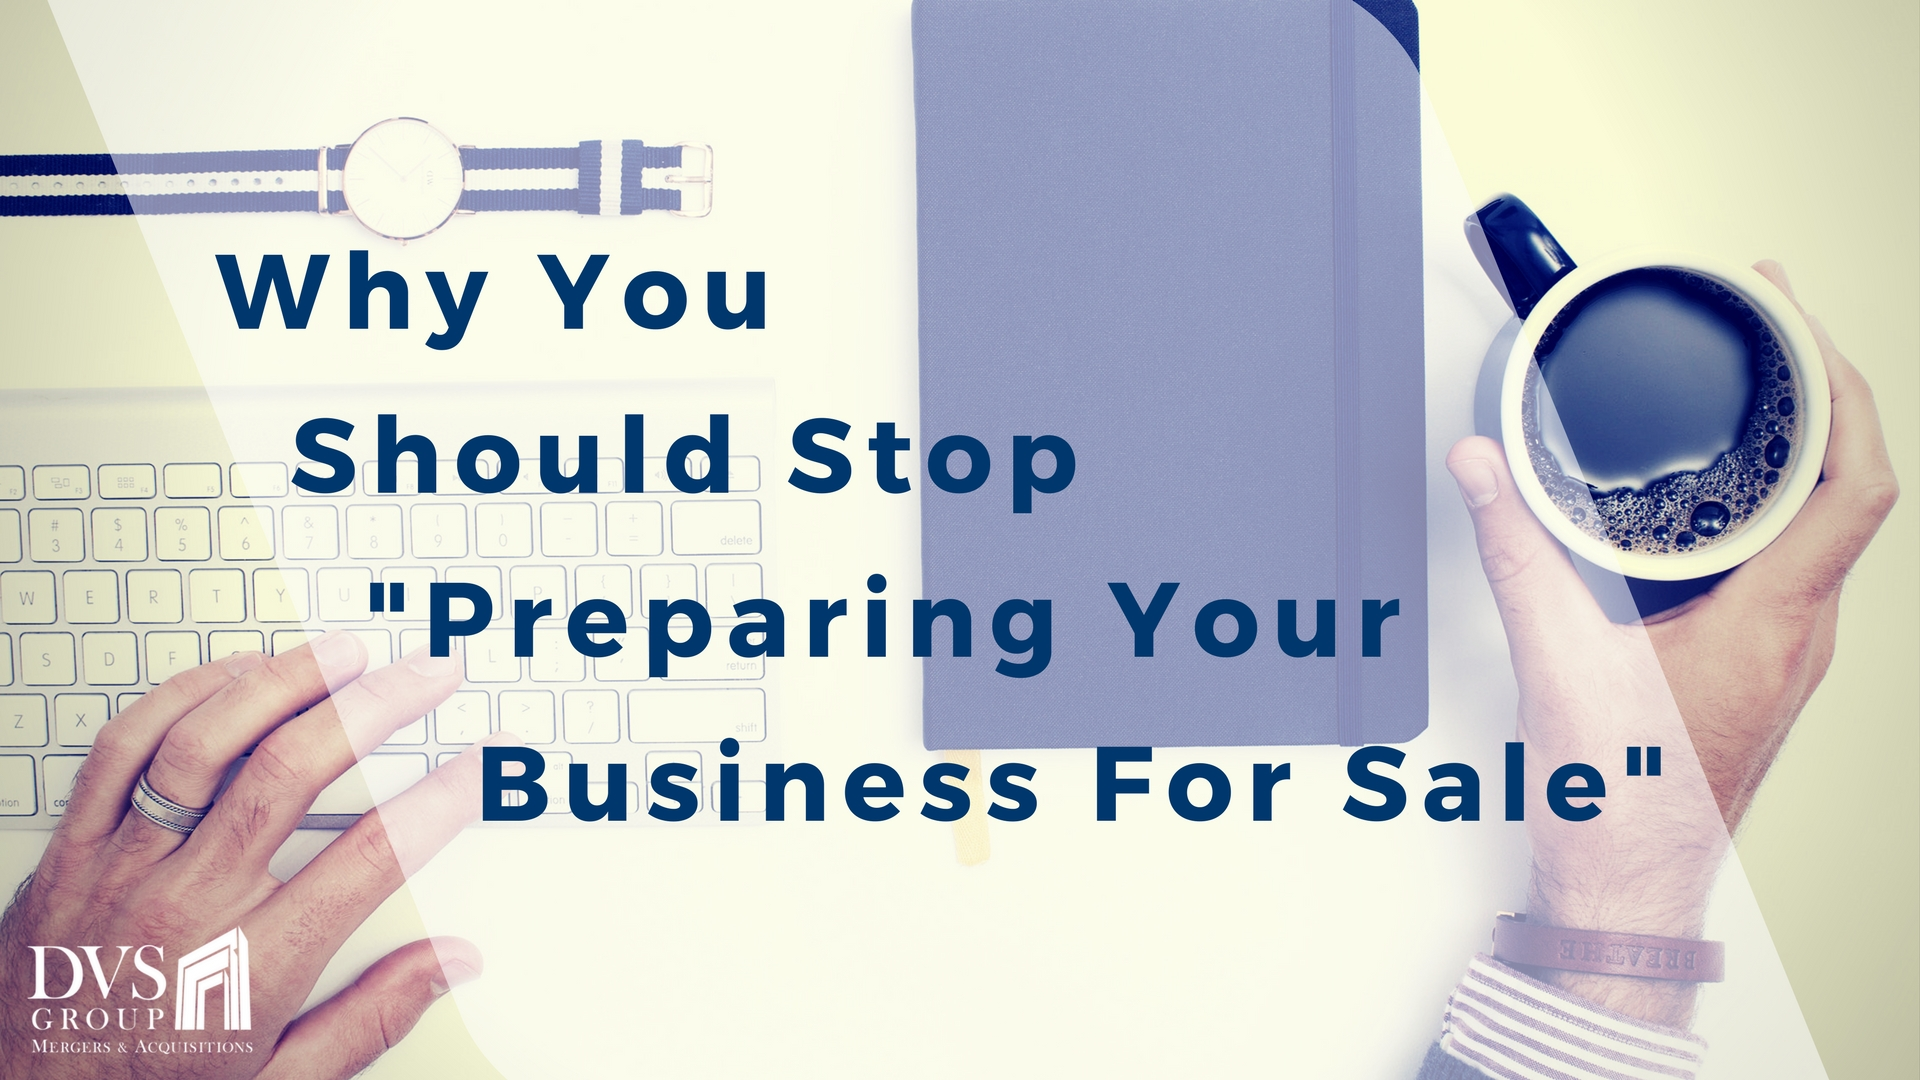 Why You Should Stop Preparing Your Business for Sale